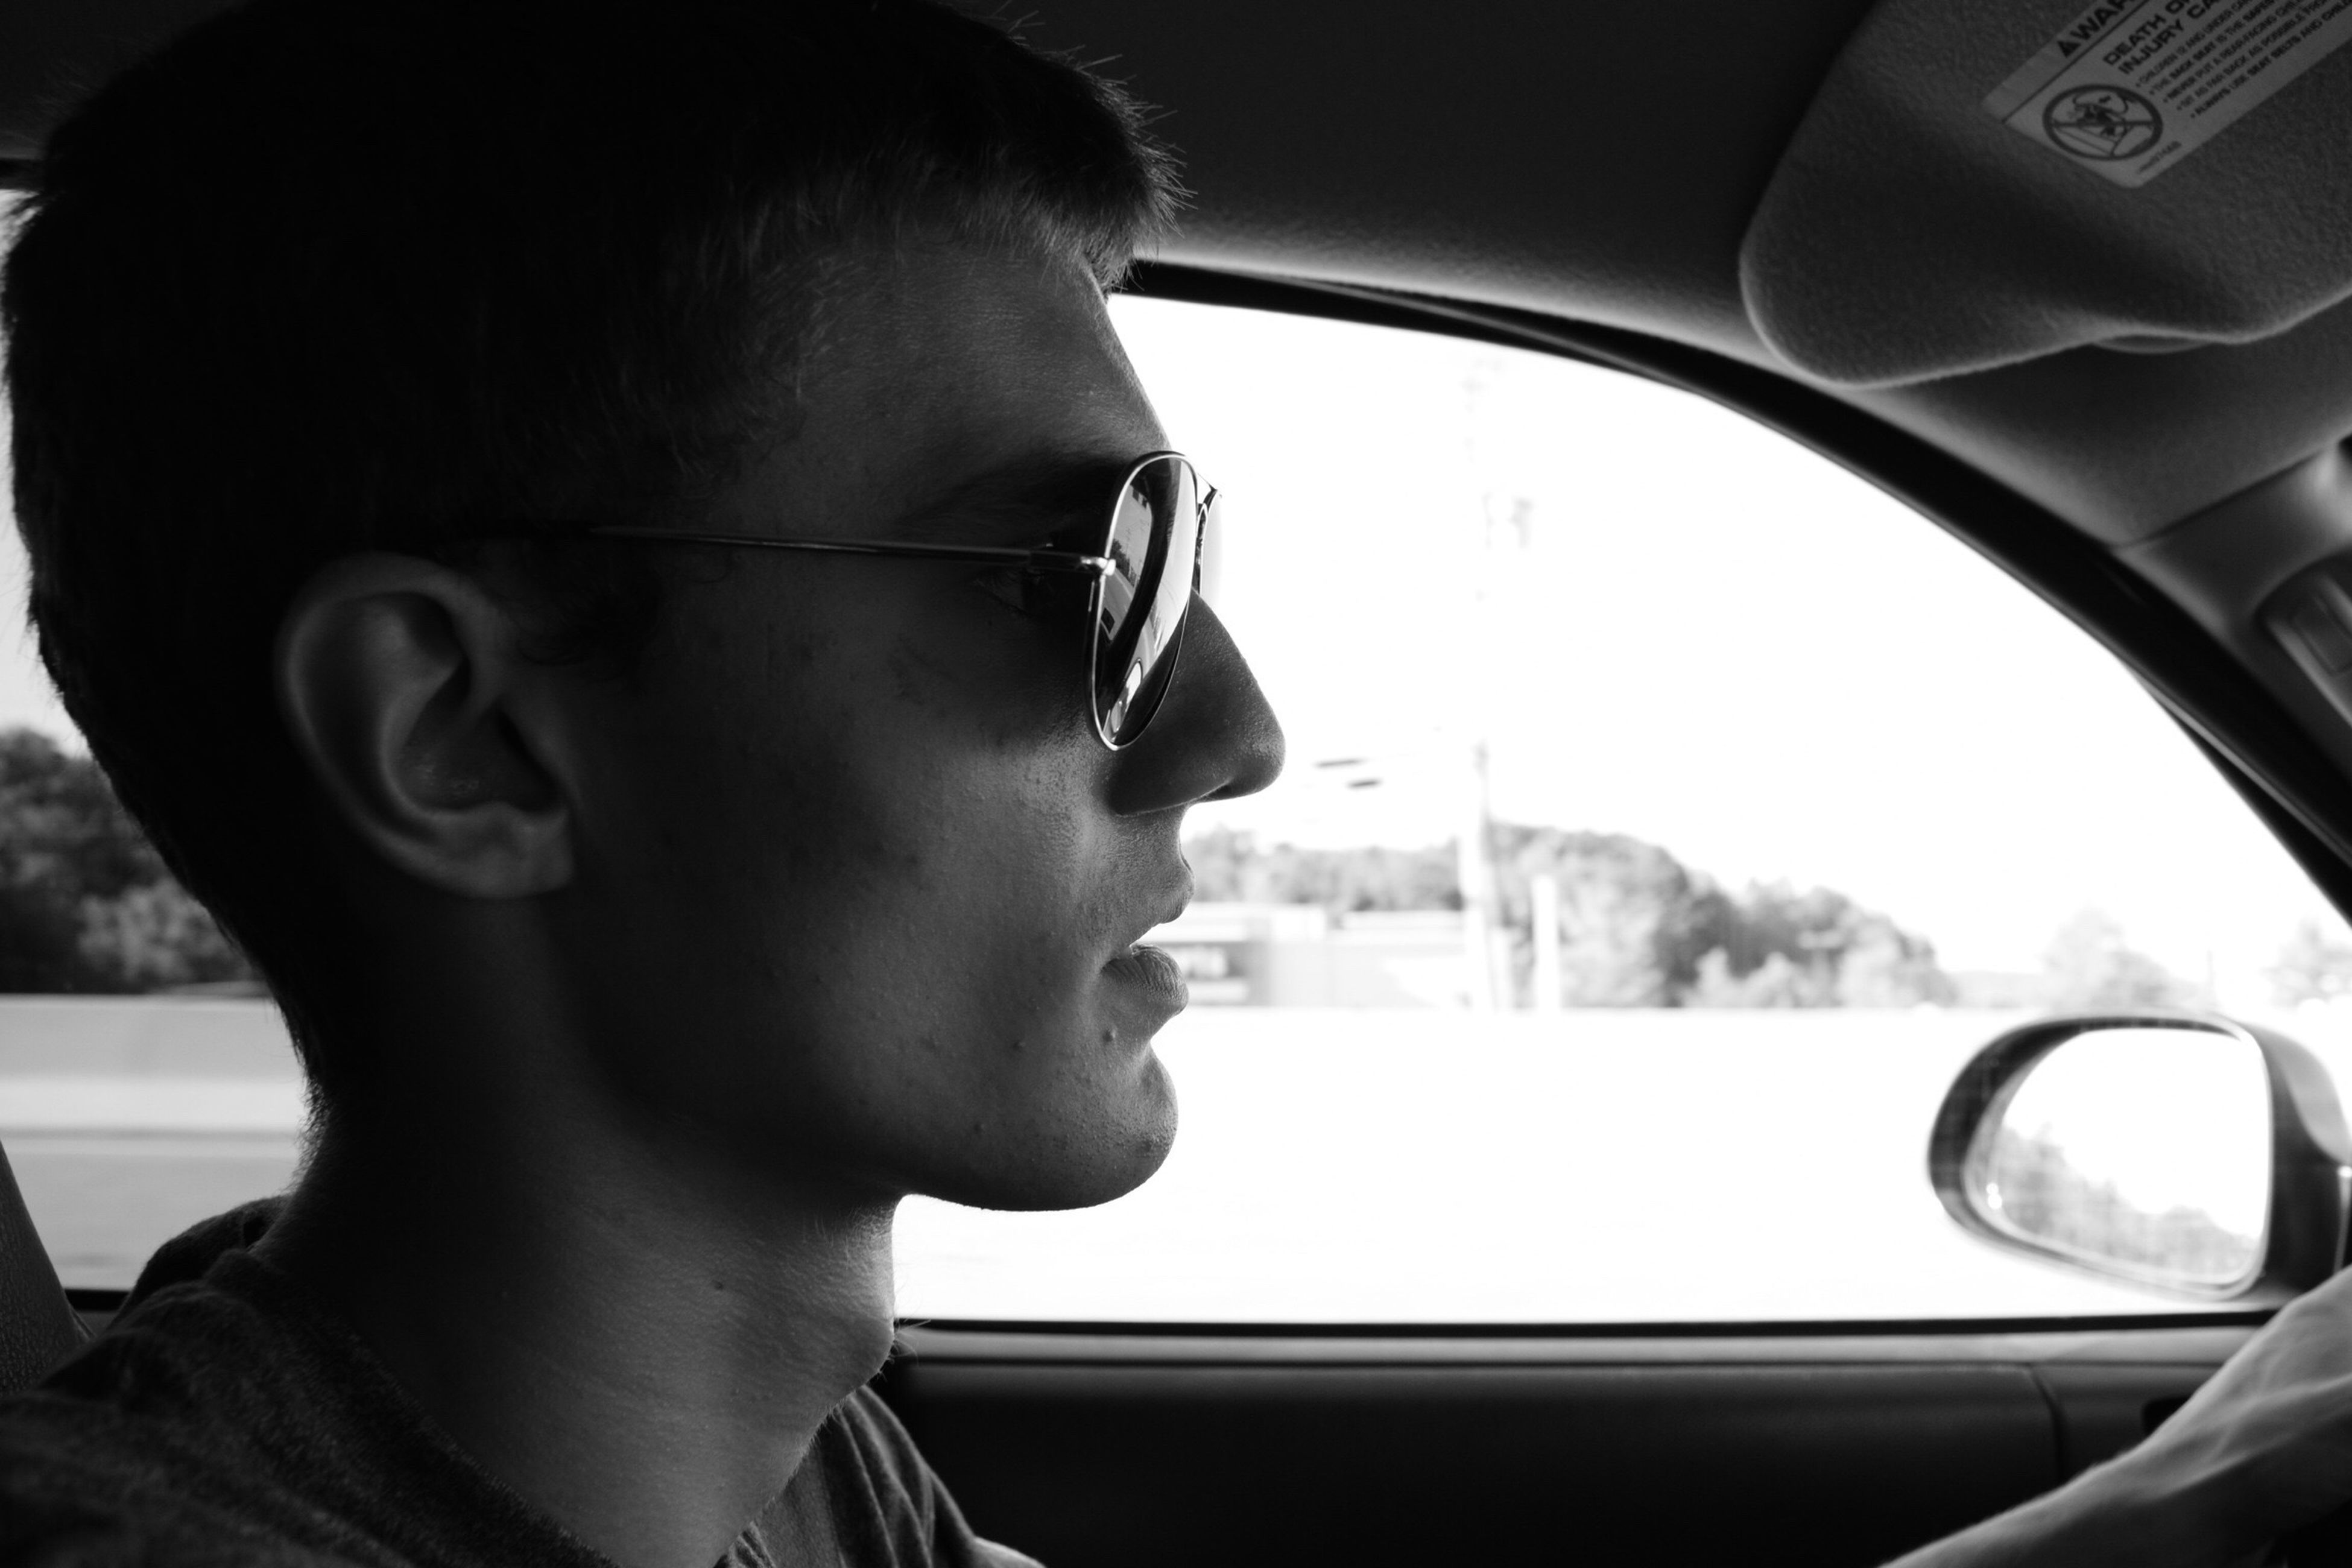 headshot, transportation, car, lifestyles, mode of transport, car interior, close-up, leisure activity, side view, window, vehicle interior, land vehicle, person, looking down, young men, glass - material, young adult, transparent, looking away, day, focus on foreground, serious, profile